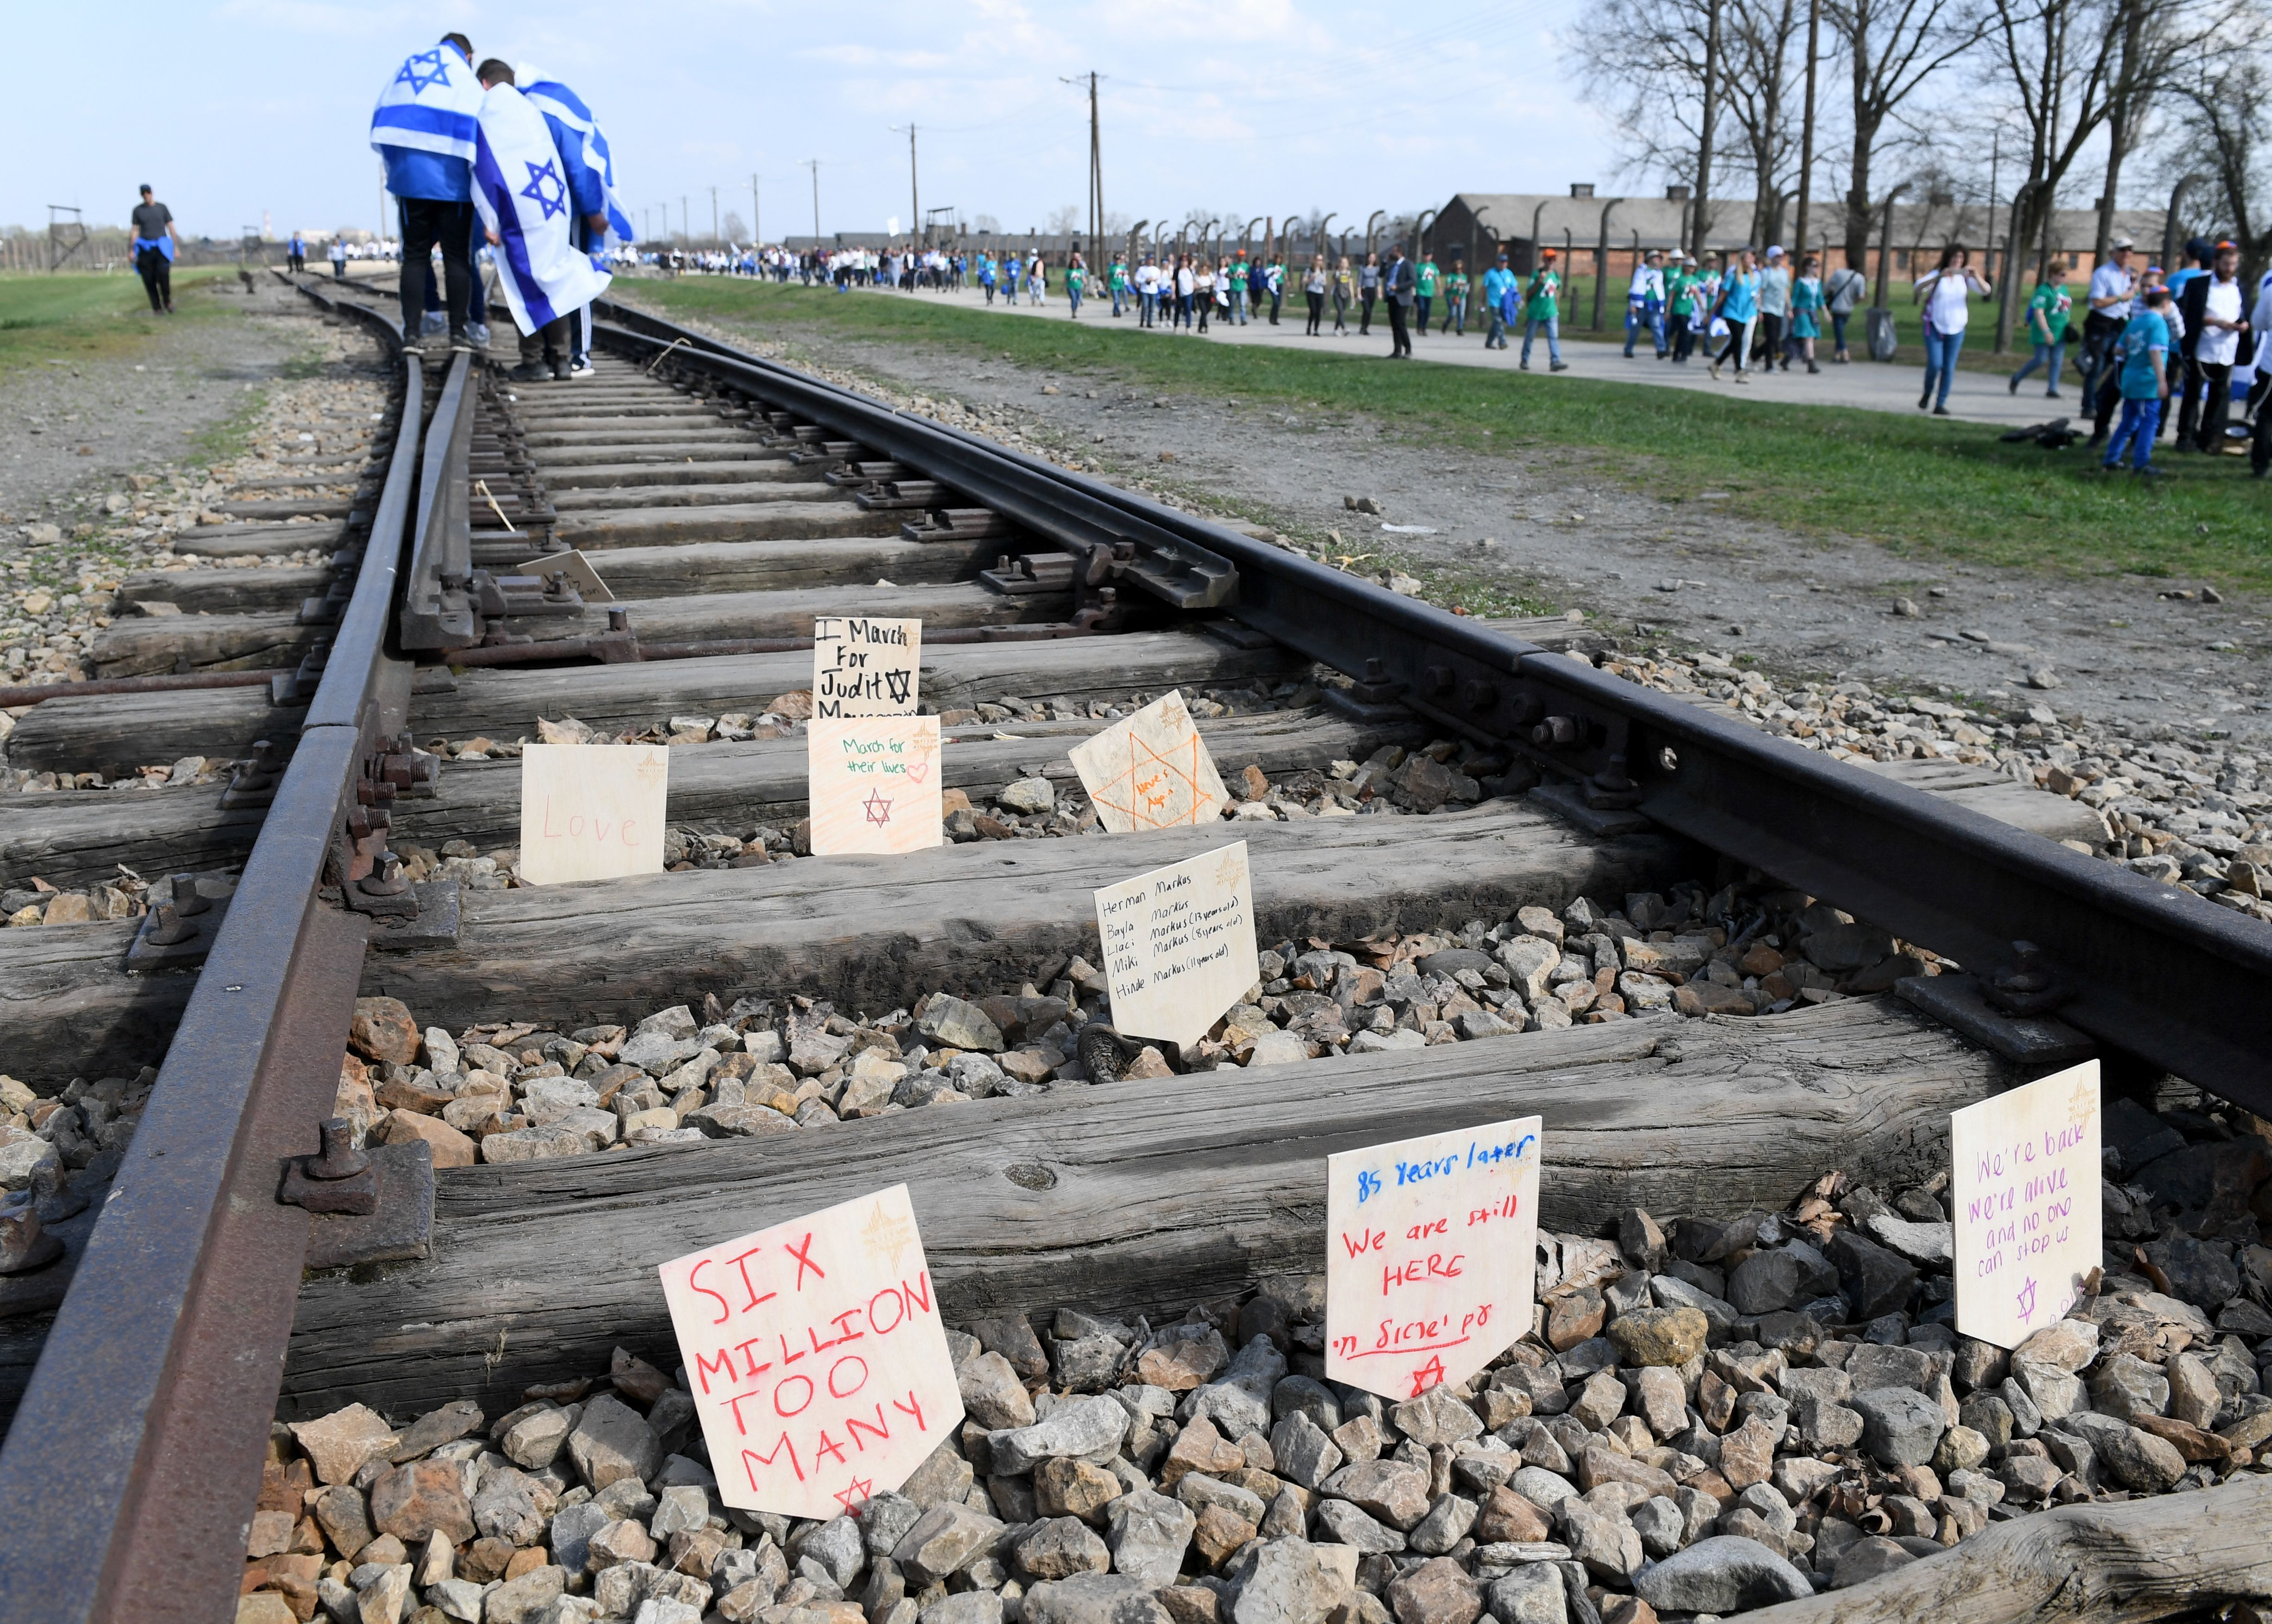 Held for the 30th time, organisers say the annual March of the Living is the world's largest single Holocaust memorial event. Thousands of young Jews from more than 40 nations marched alongside a handful of Holocaust survivors and Polish teenagers in homage to the victims of the former Auschwitz-Birkenau WWII death camp in southern Poland. / AFP PHOTO / JANEK SKARZYNSKI